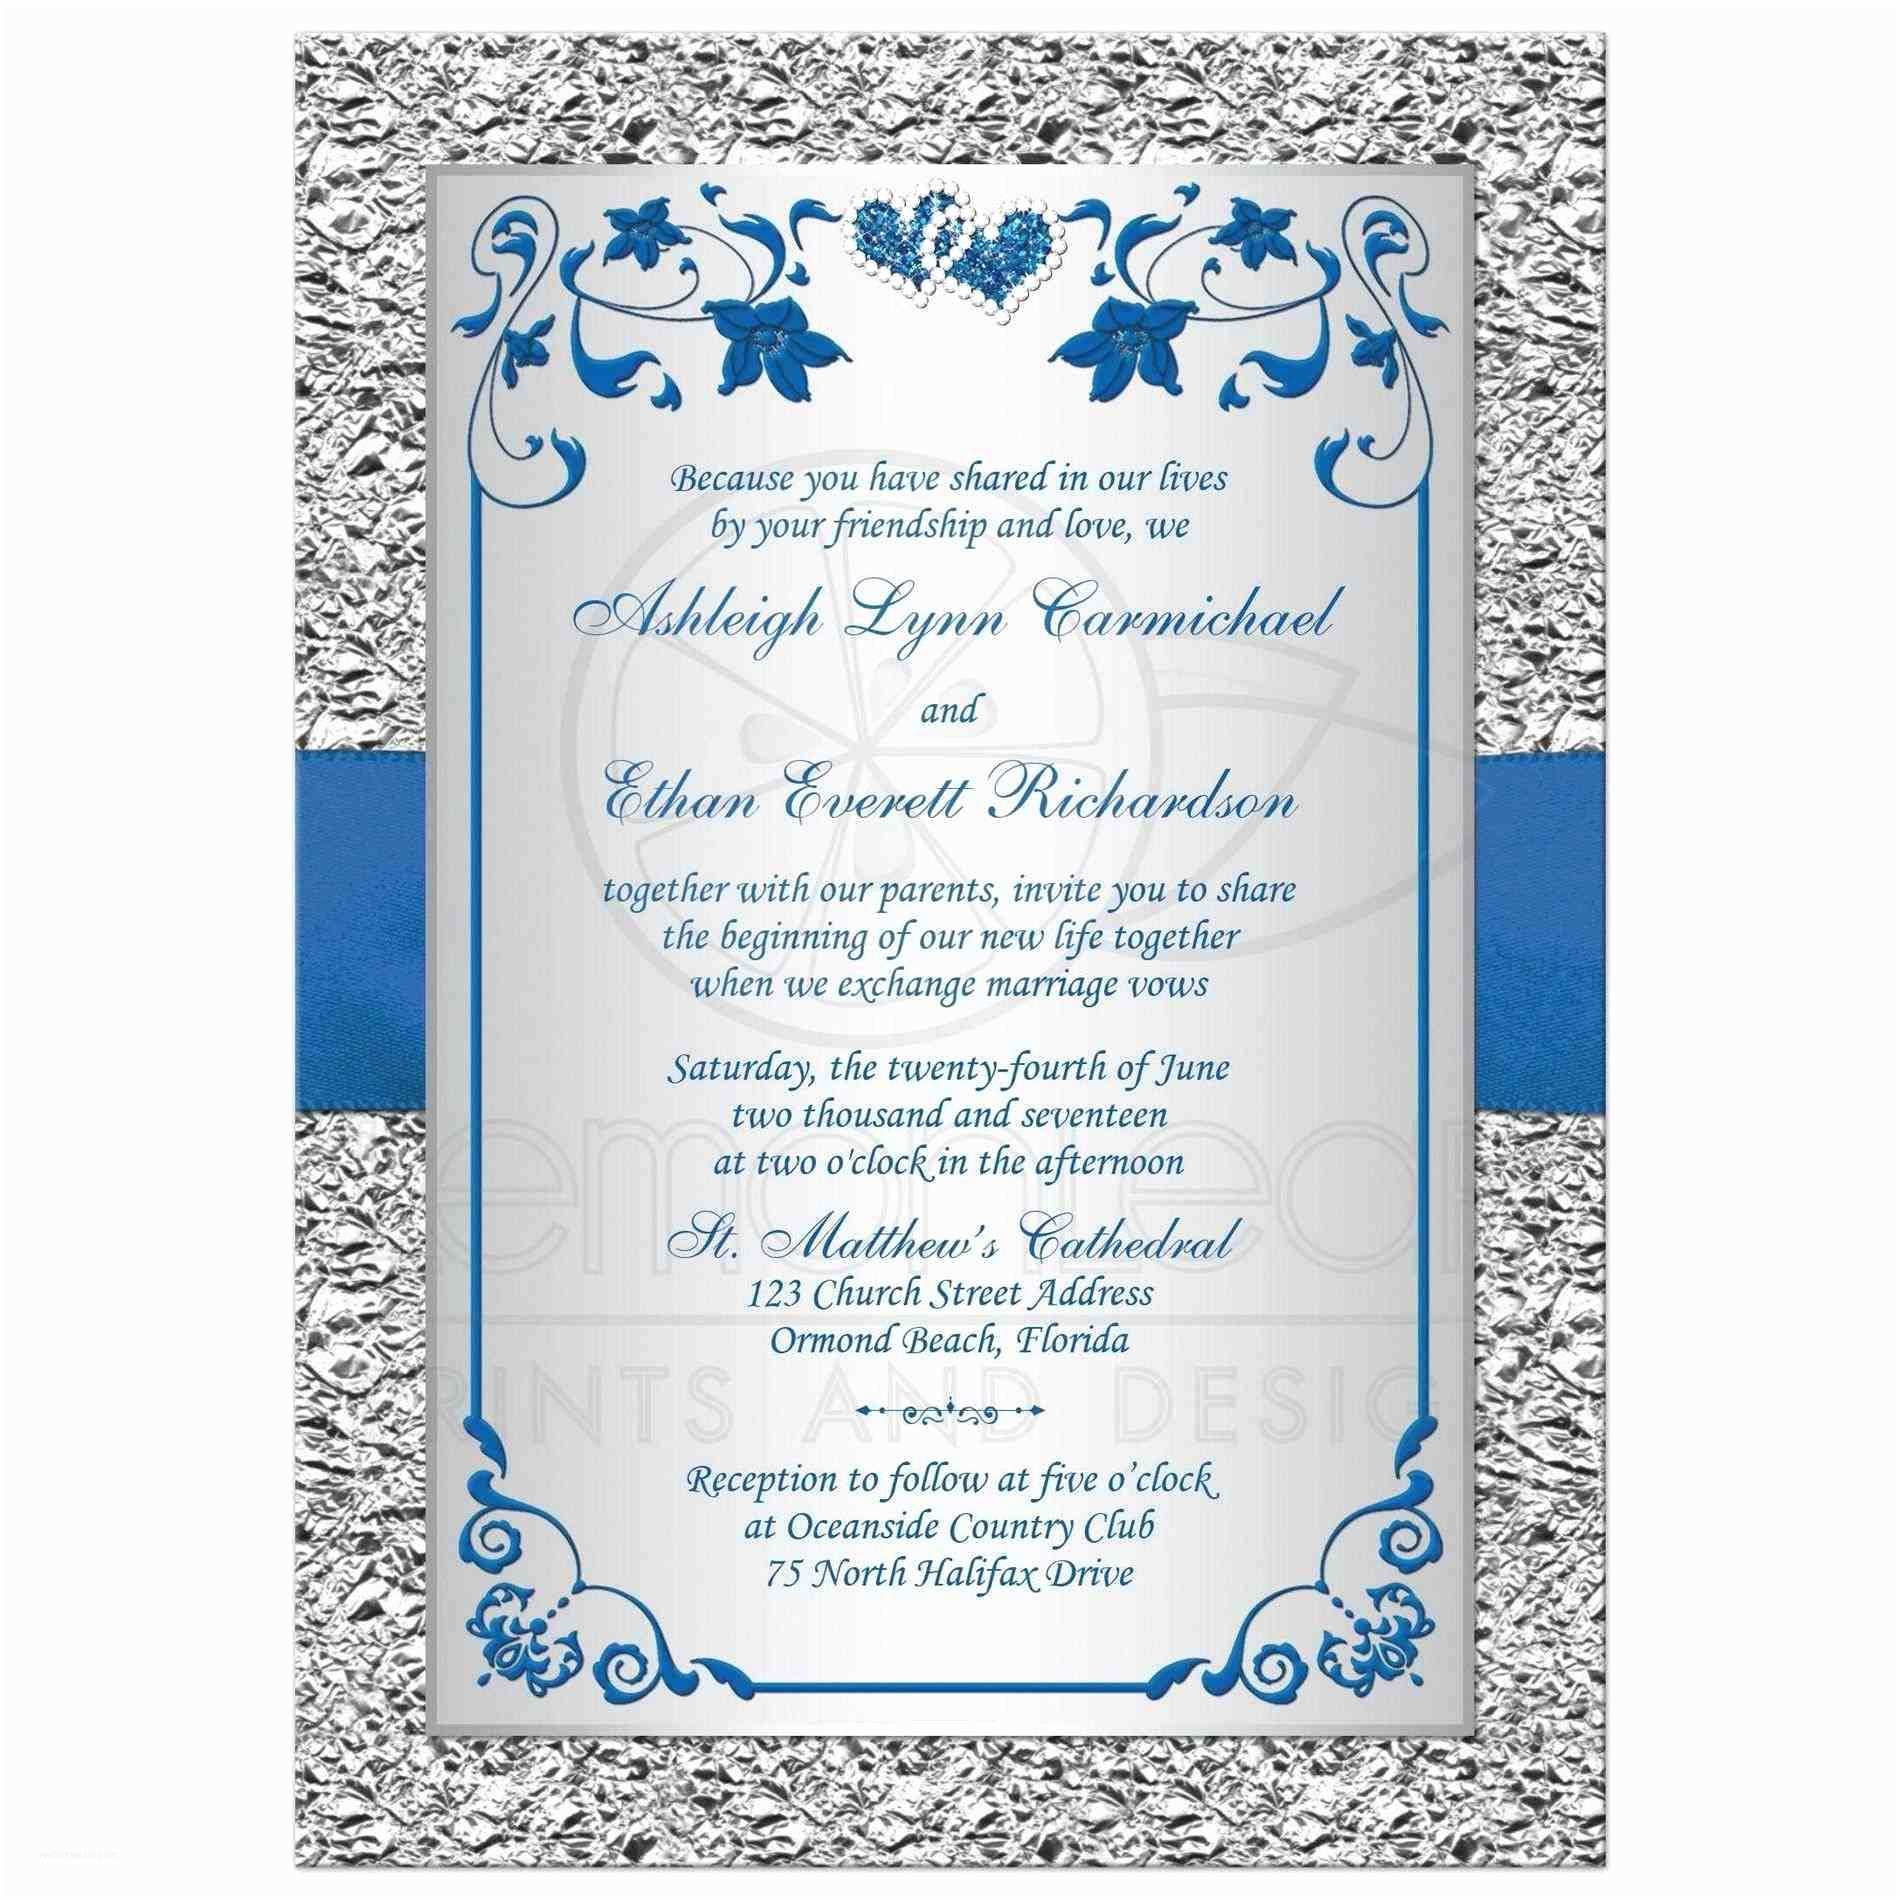 Our Best Gallery of 39 Silver Wedding Invitations